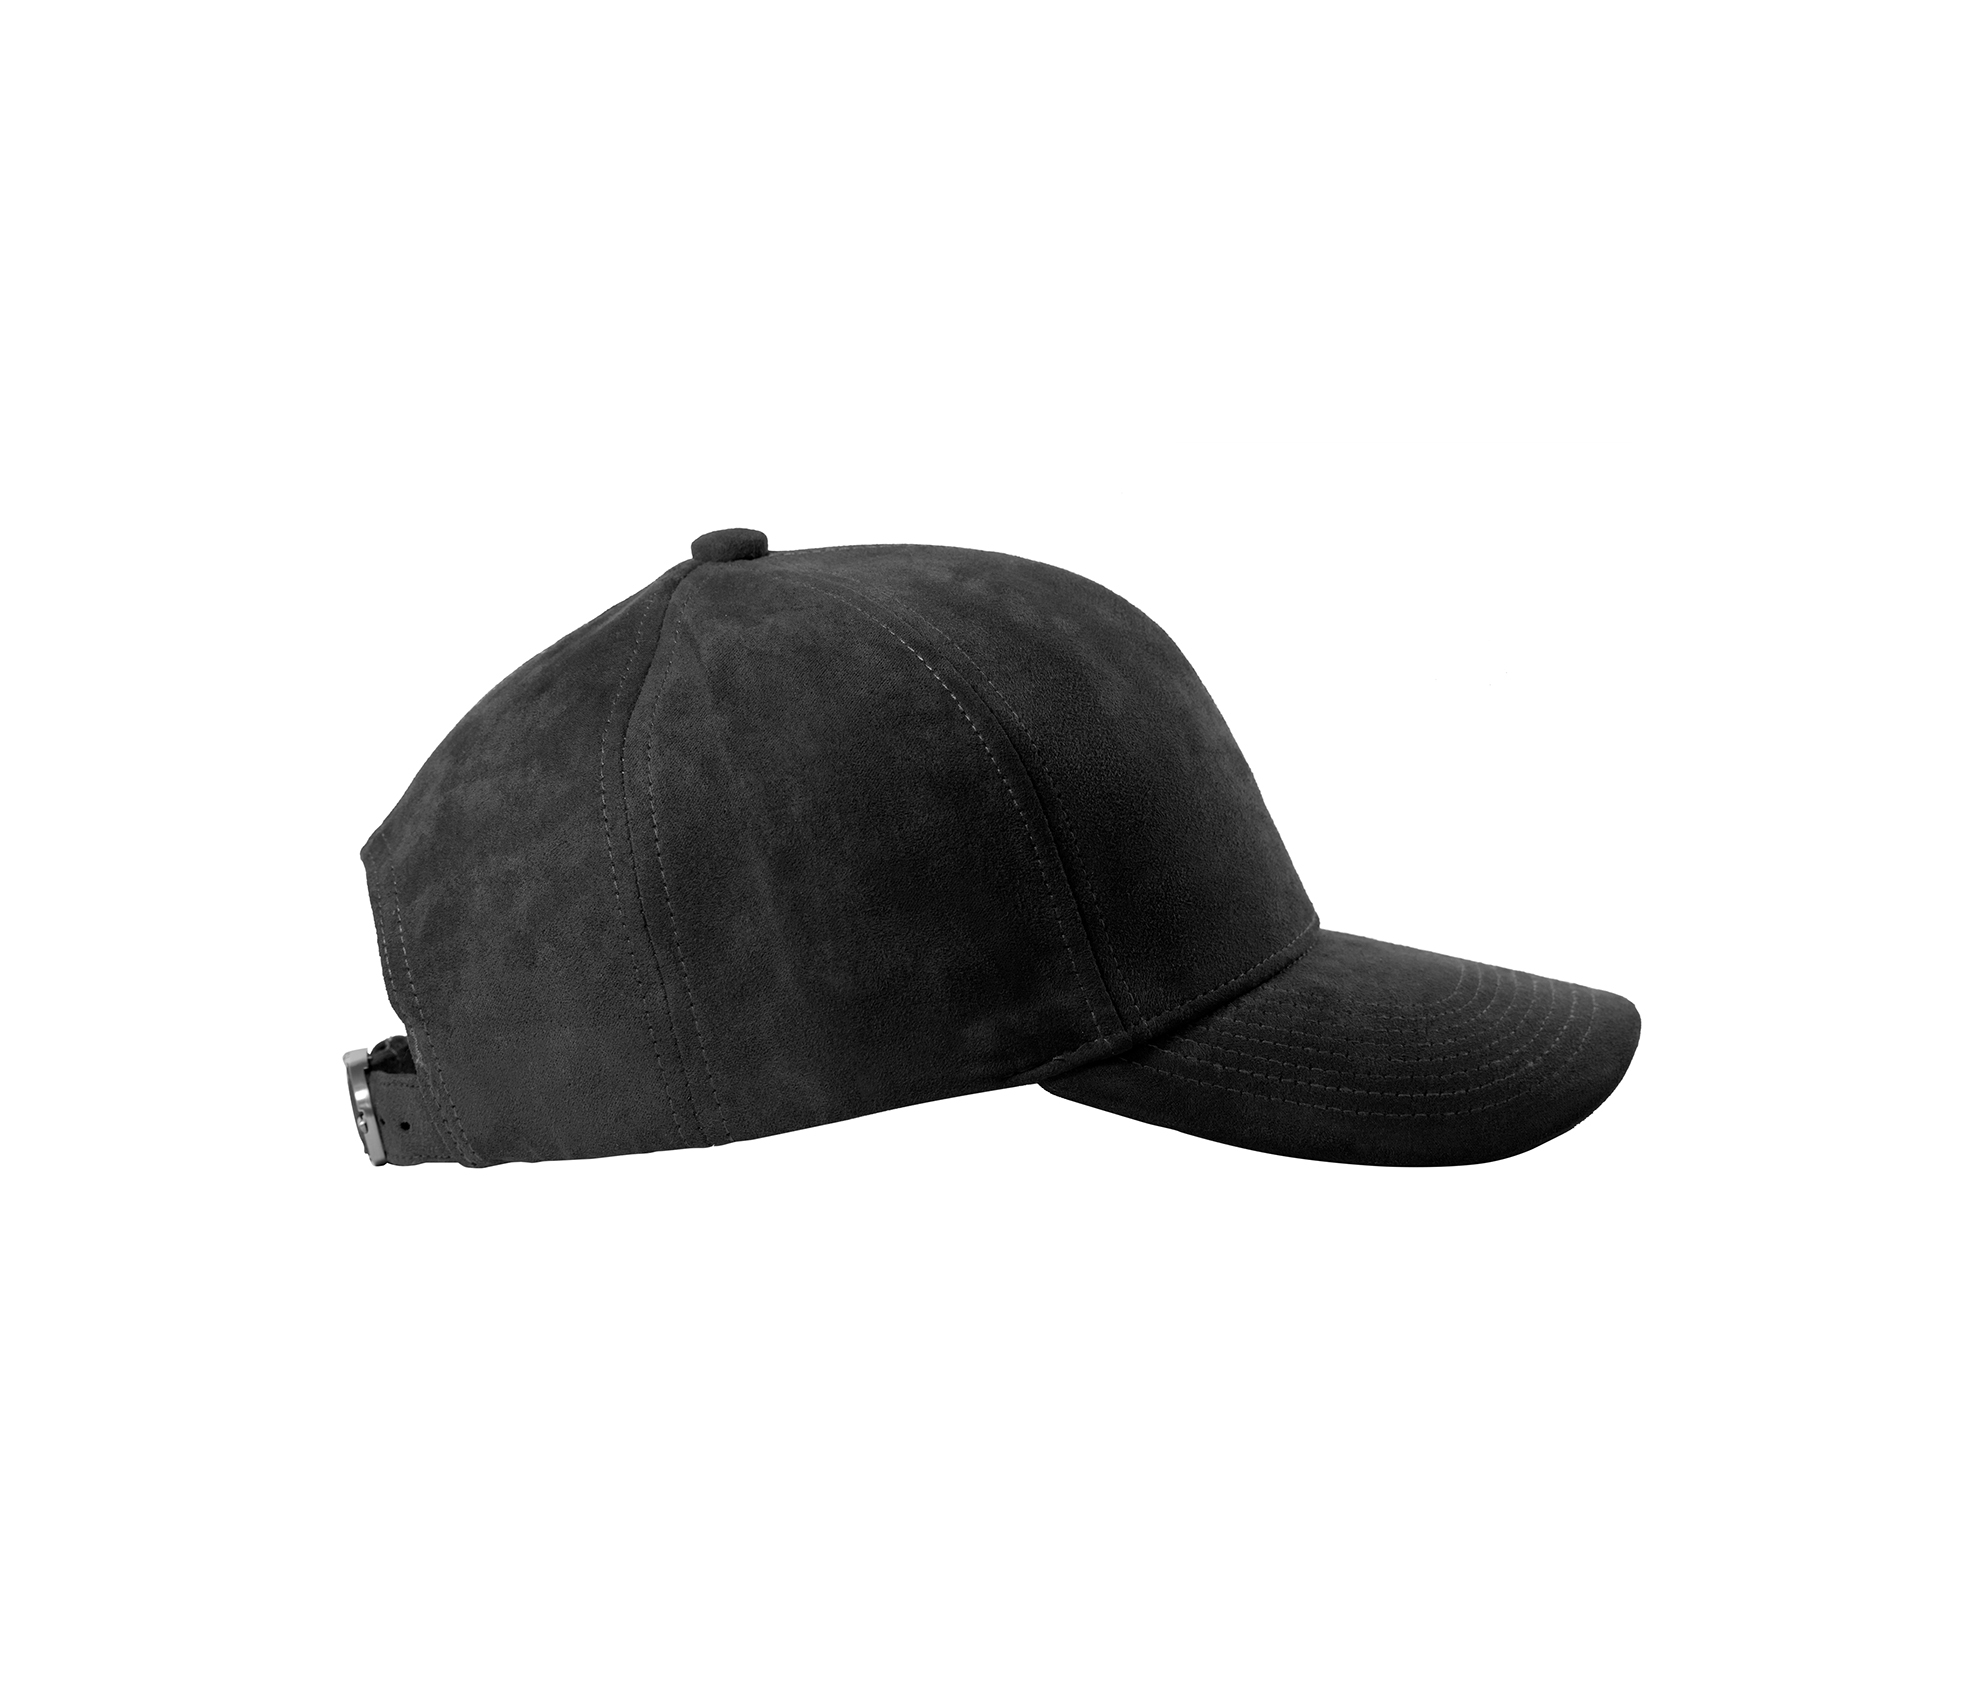 BASEBALL CAP ANTHRACITE SUEDE FROZEN GREY SIDE